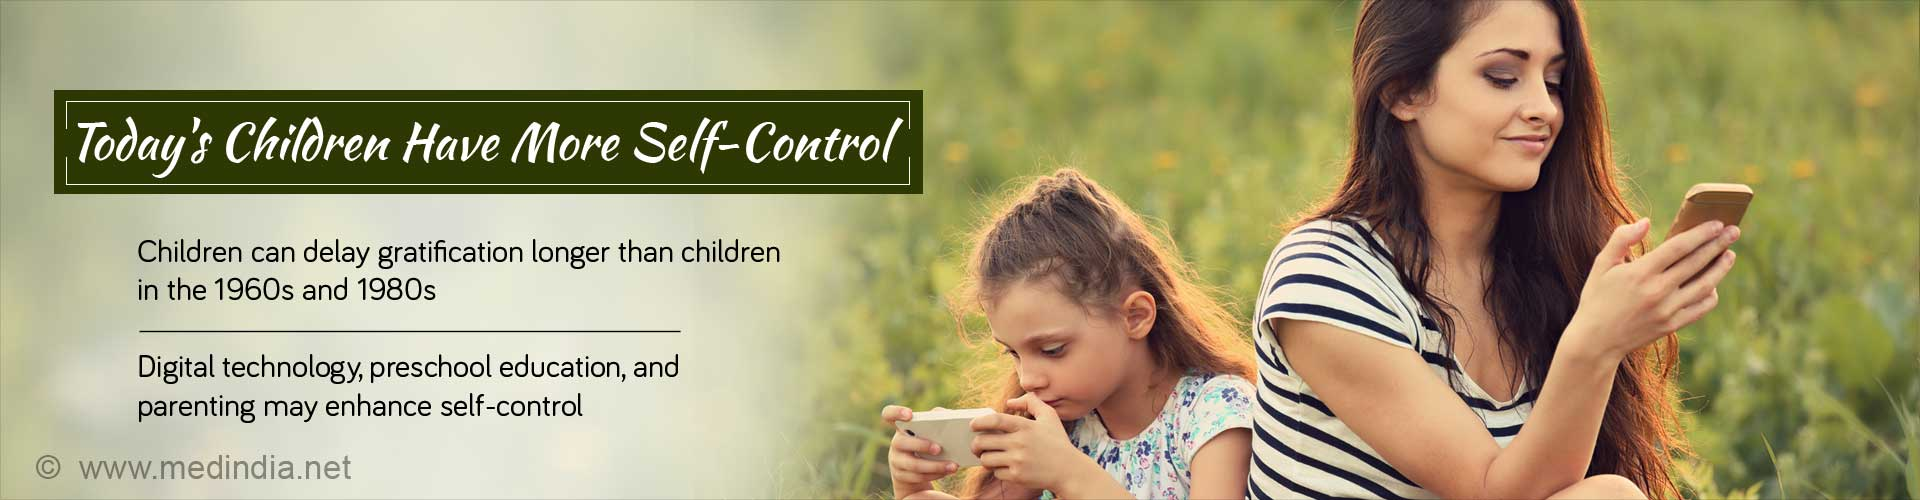 Today's children have more self-control. Children can delay gratification longer than children in the 1960s and 1980s. Digital technology, preschool education, and parenting may enhance self-control.